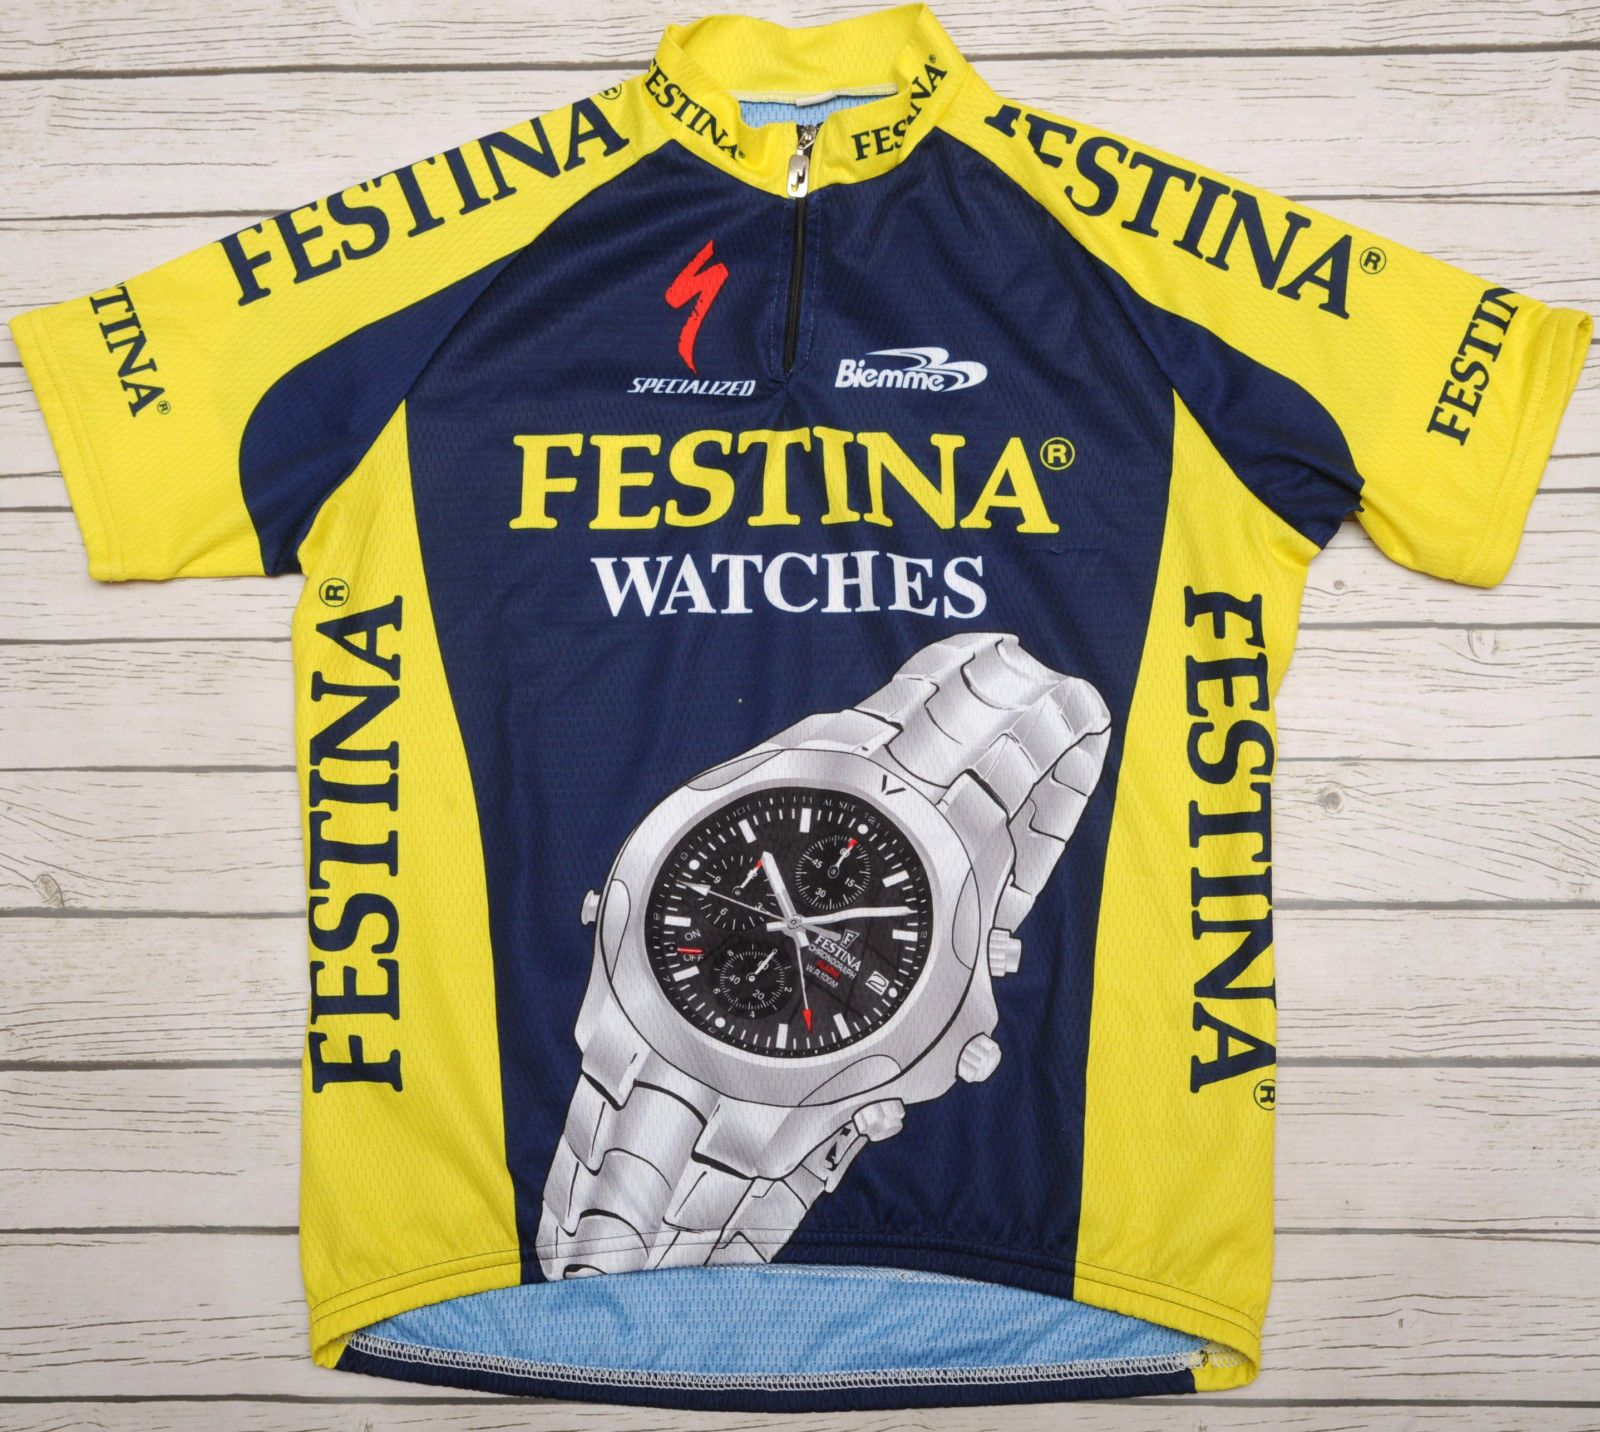 ca19d3074 FESTINA WATCHES SPECIALIZED - BIEMME - vintage short sleeve MEN S JERSEY -  L